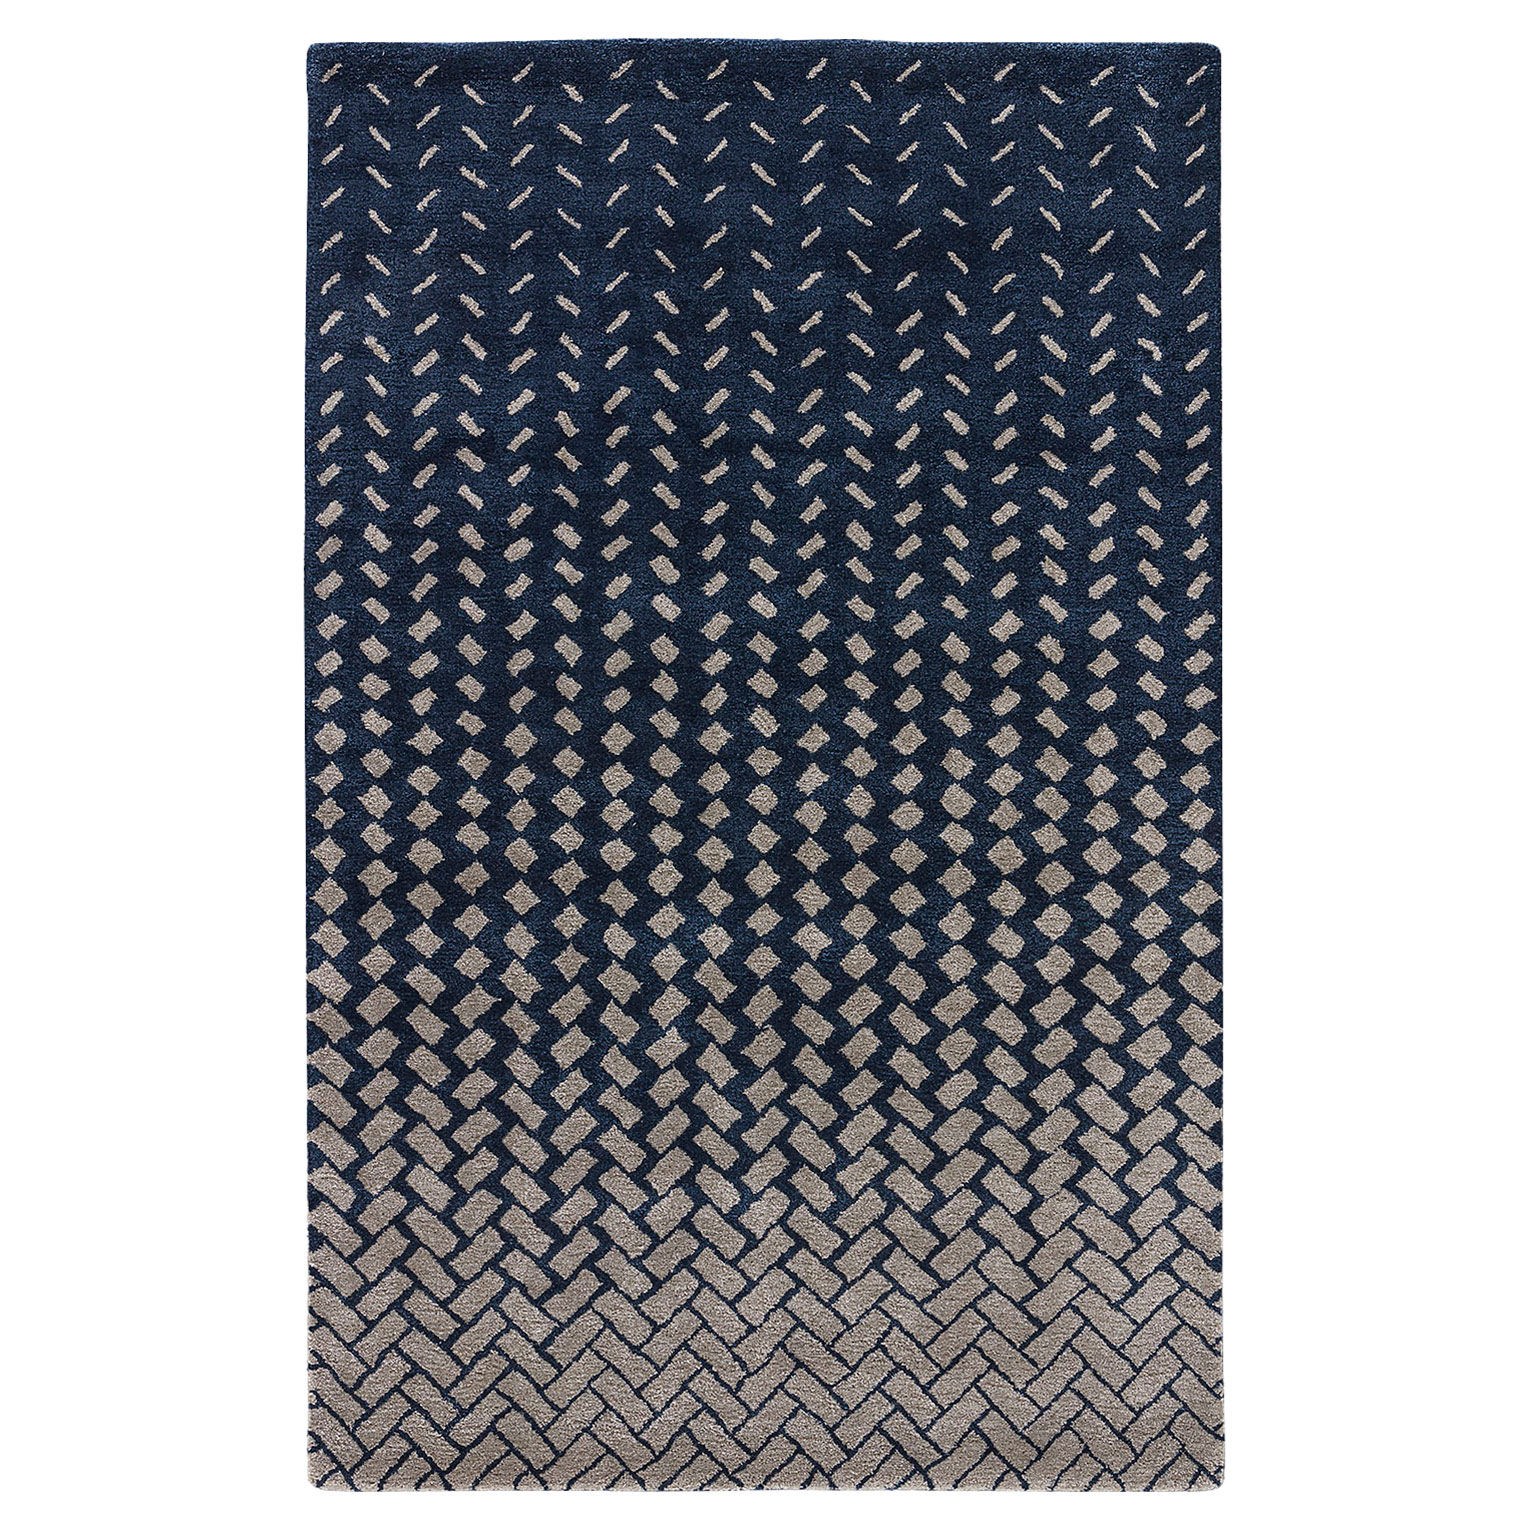 Wisco Modern Tile Wash Navy Wool Rug - 5x8